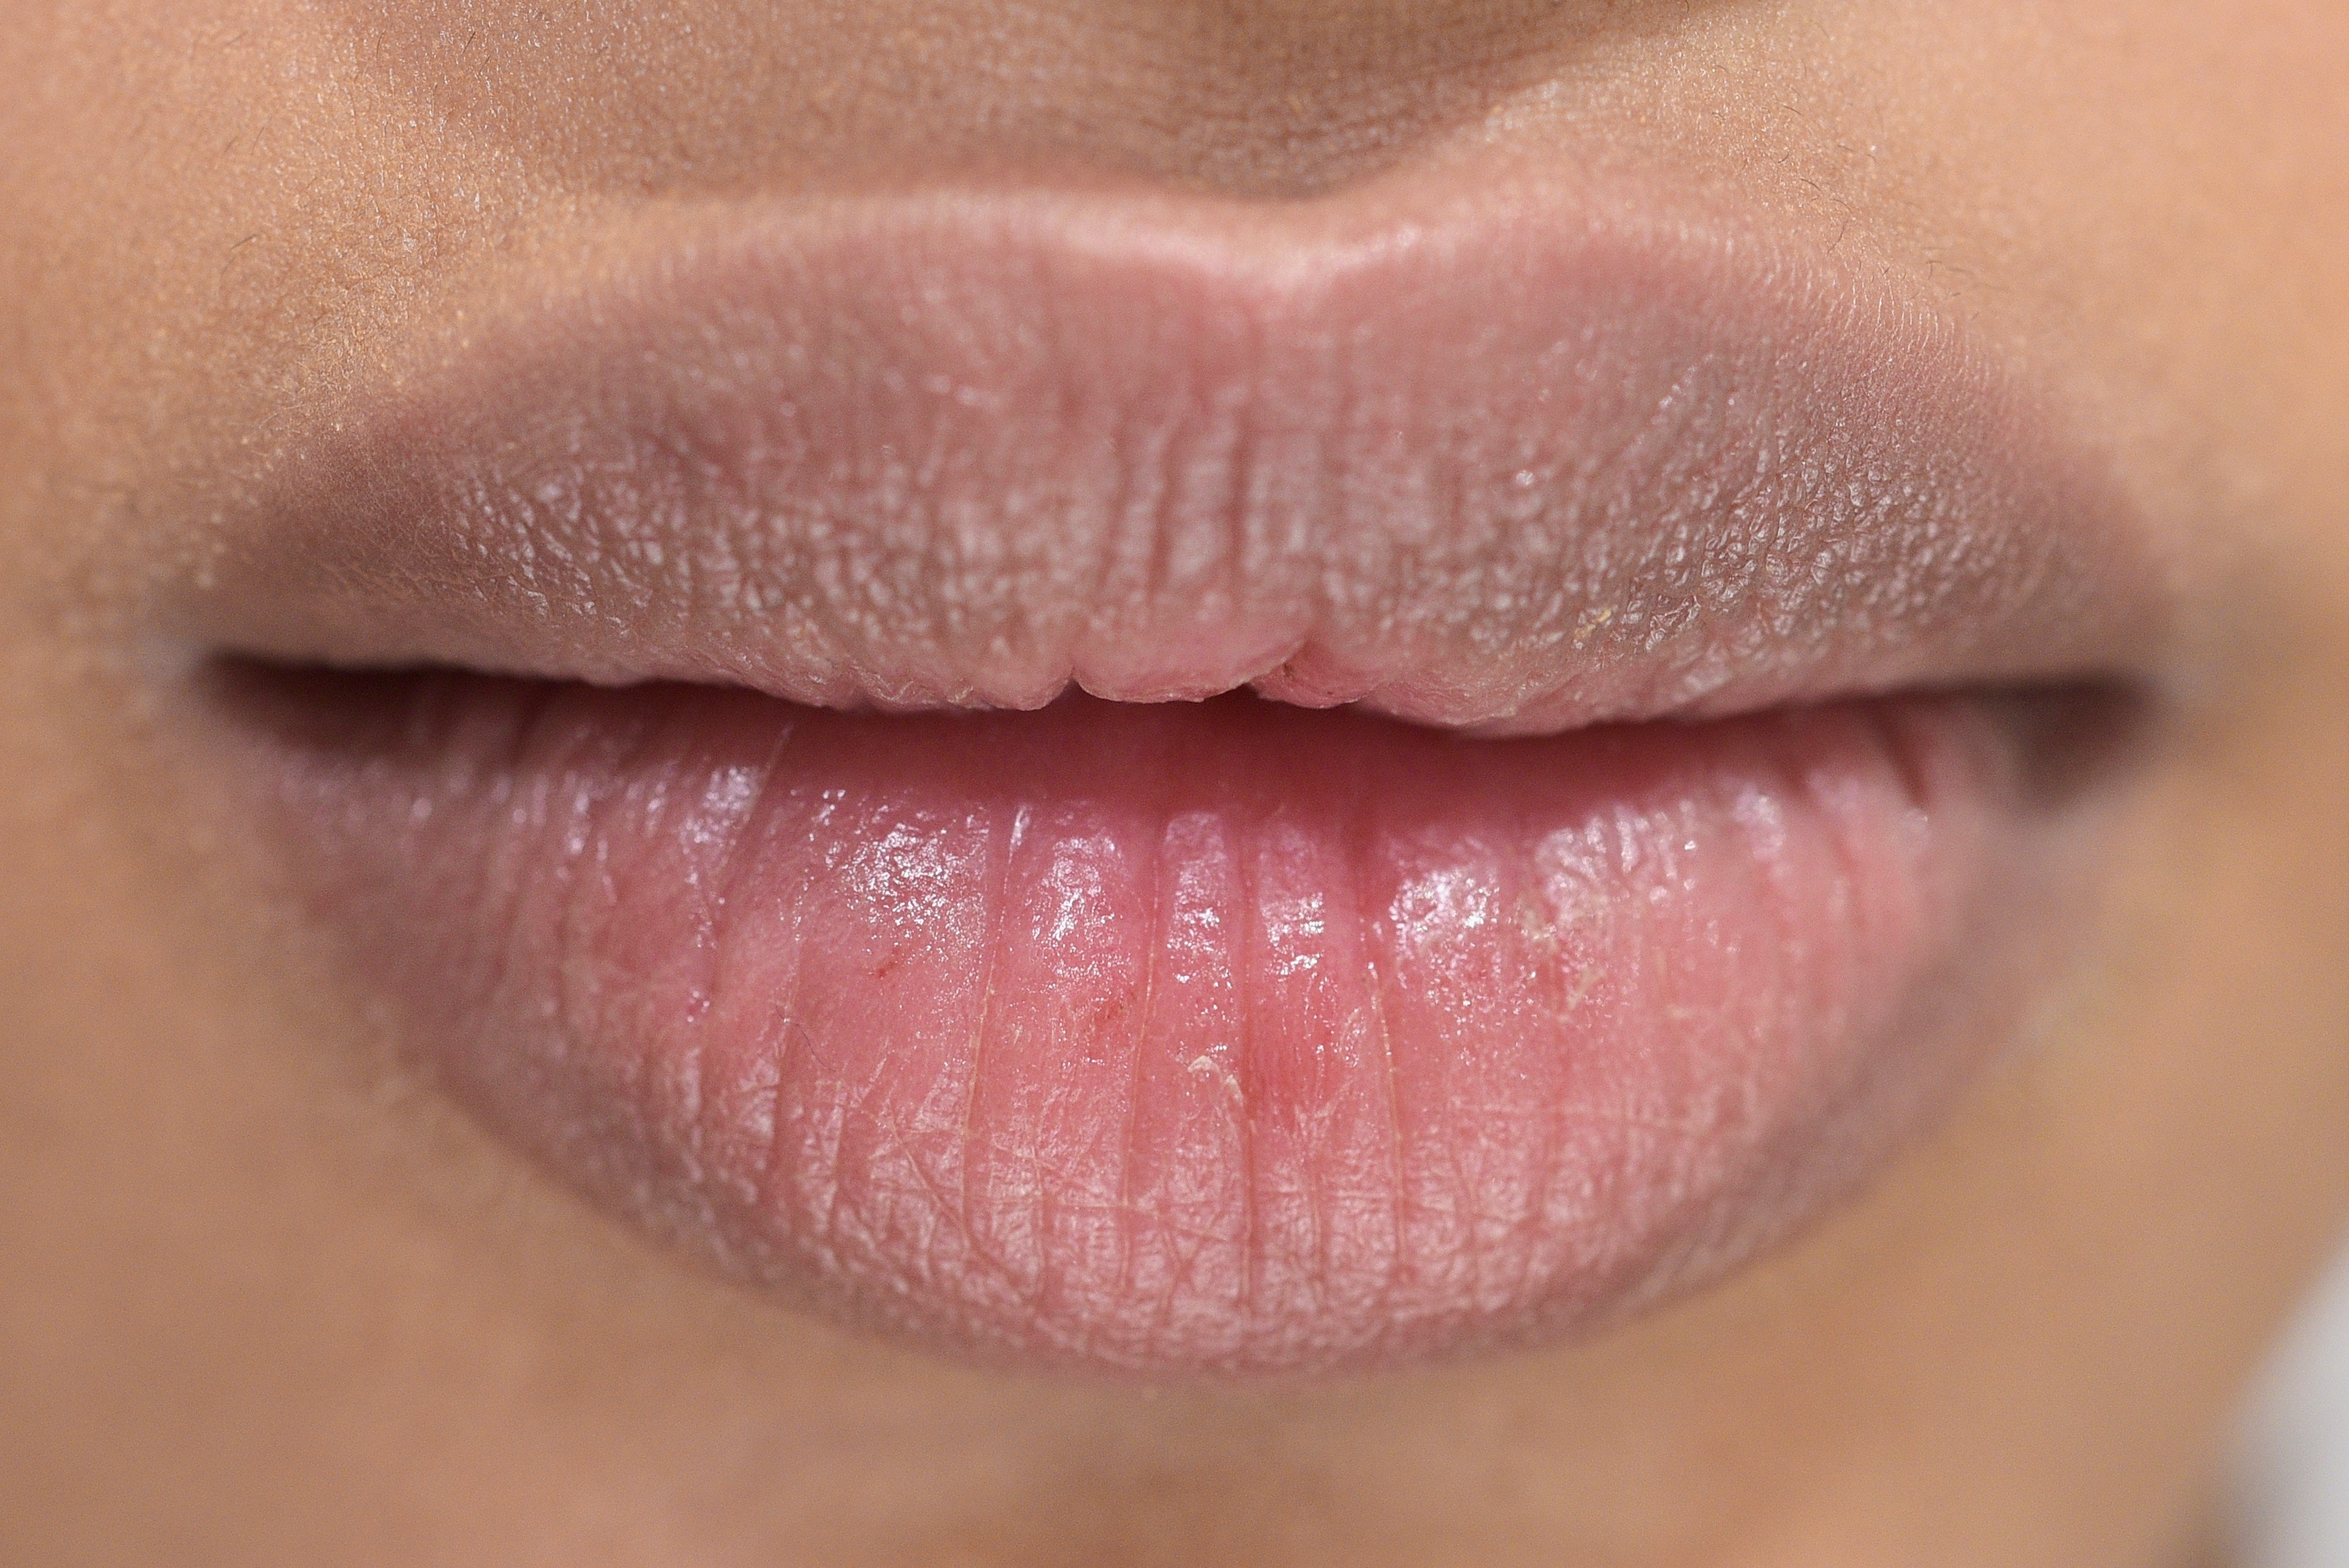 7 Ways Chapped Lips Could Be A Sign of Something Else